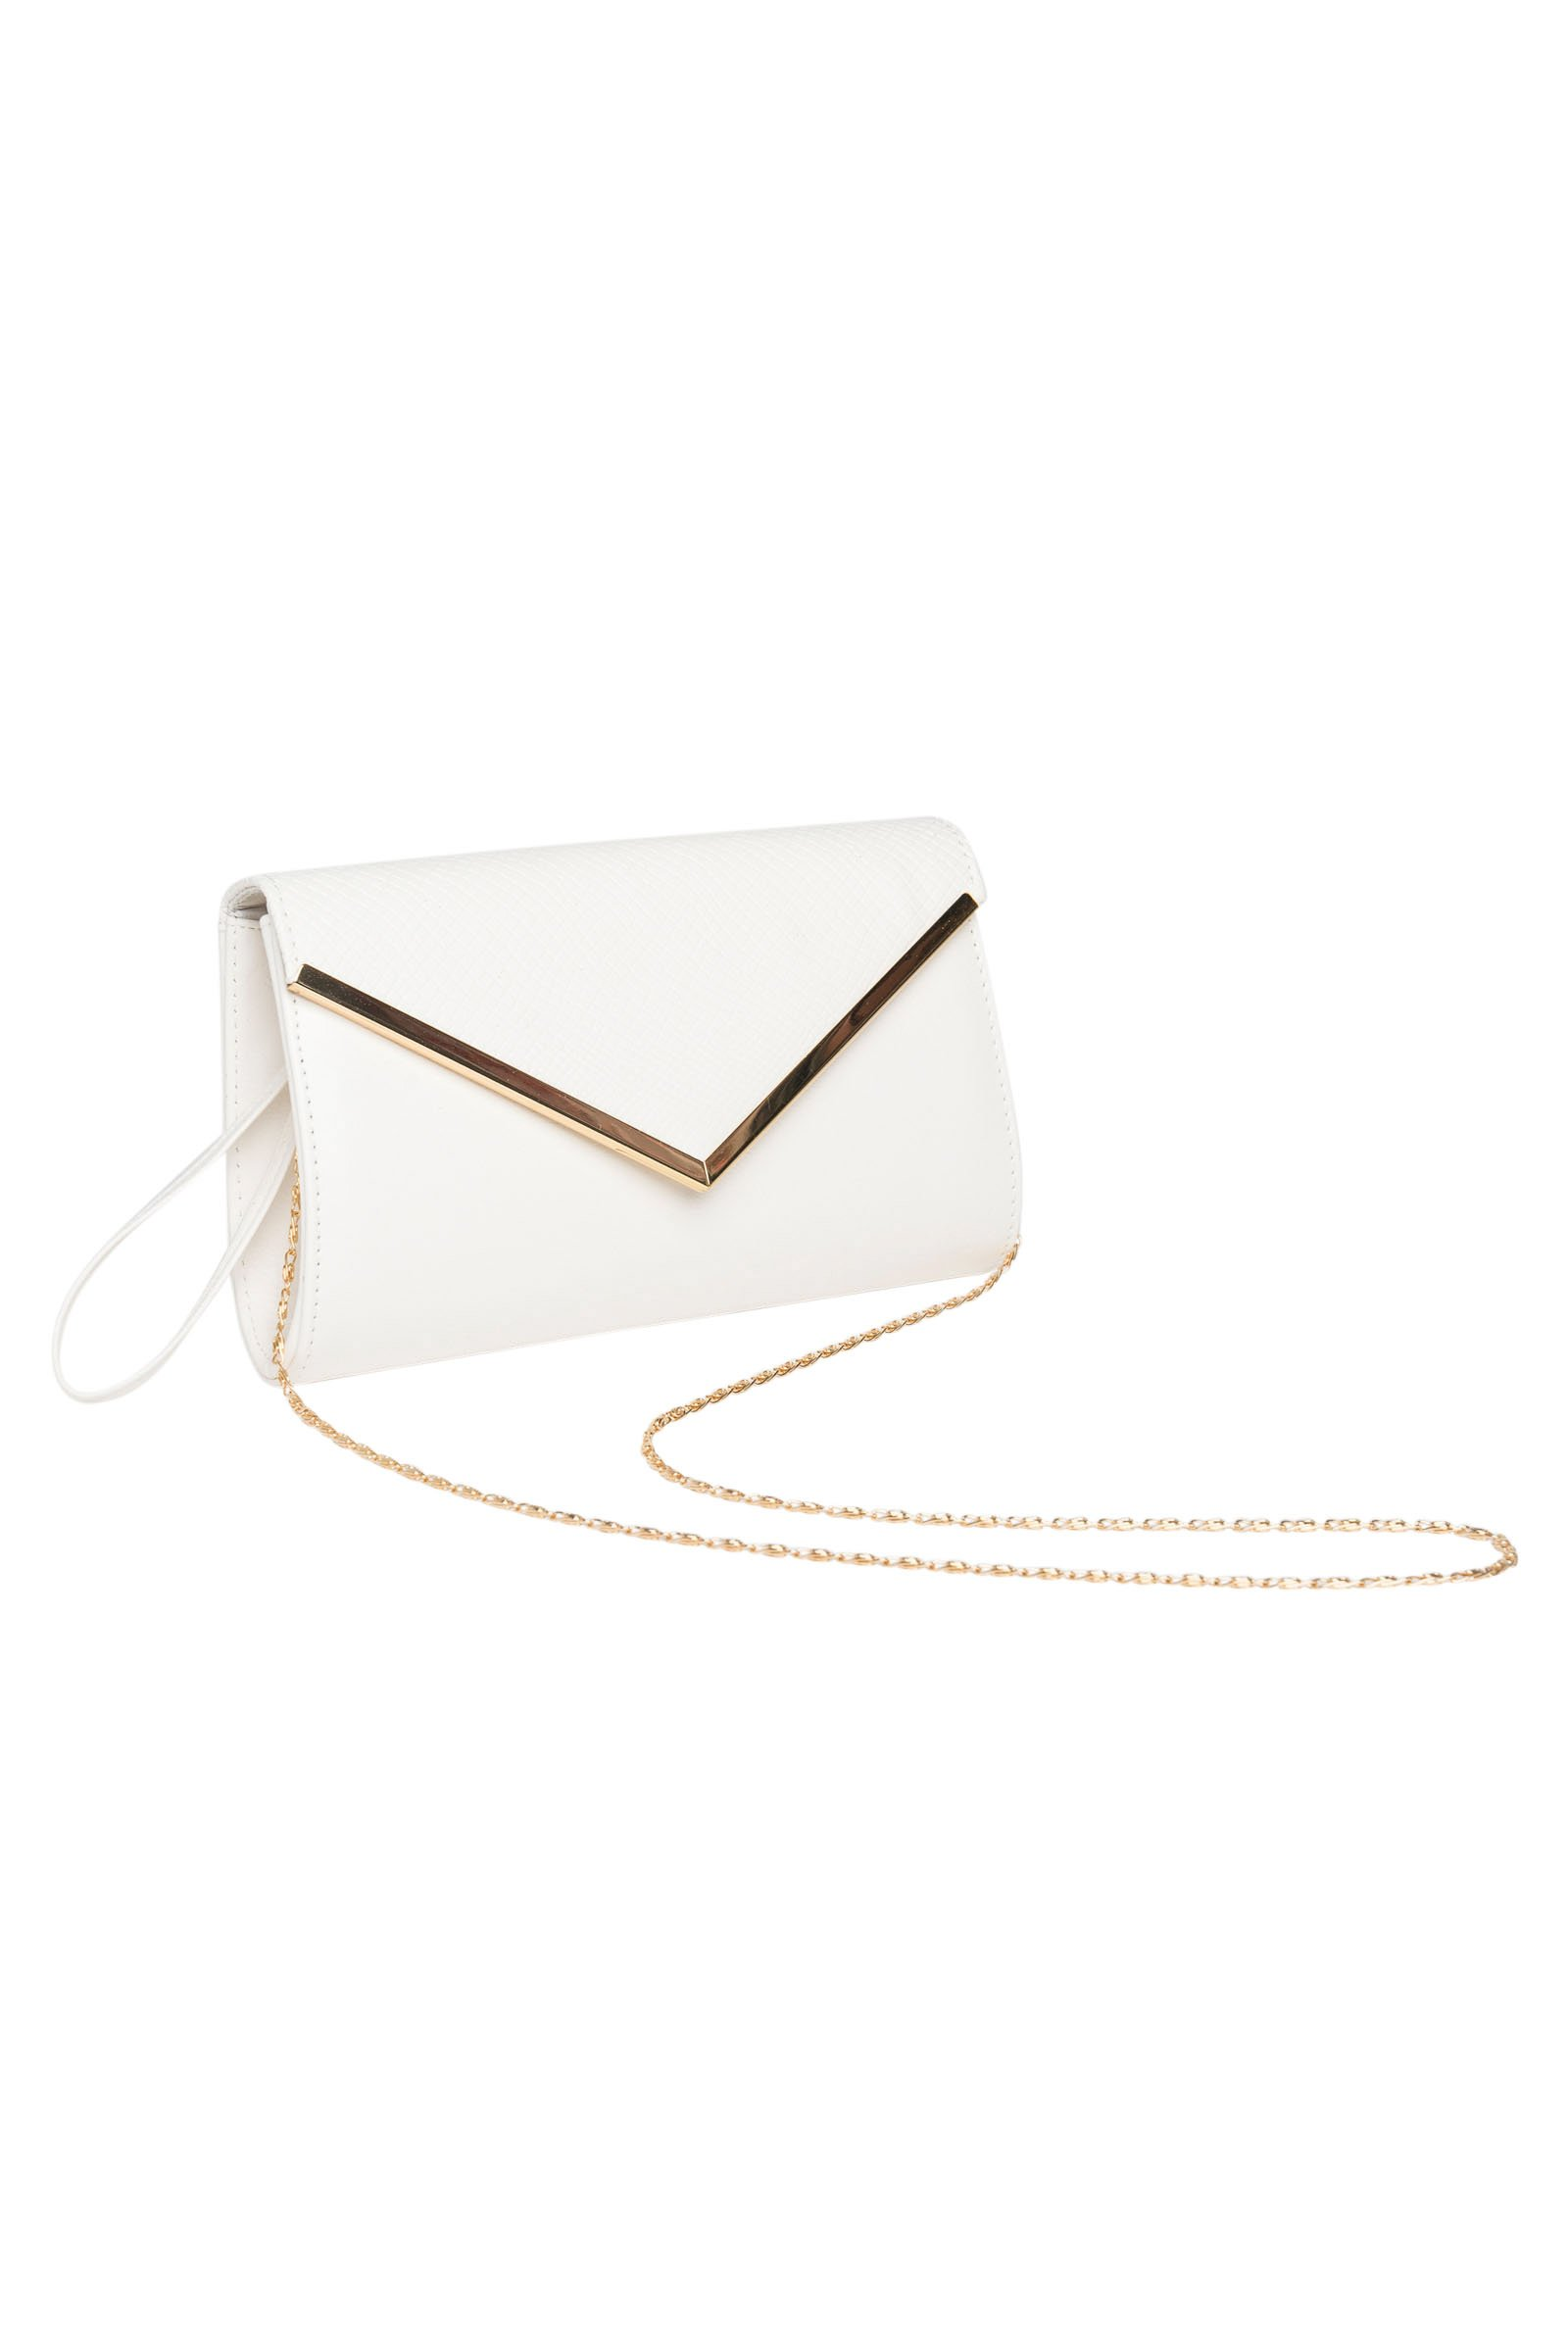 Ardene - Women's - Clutches - Faux Leather Envelope Clutch O/S -(8A-WL00107)